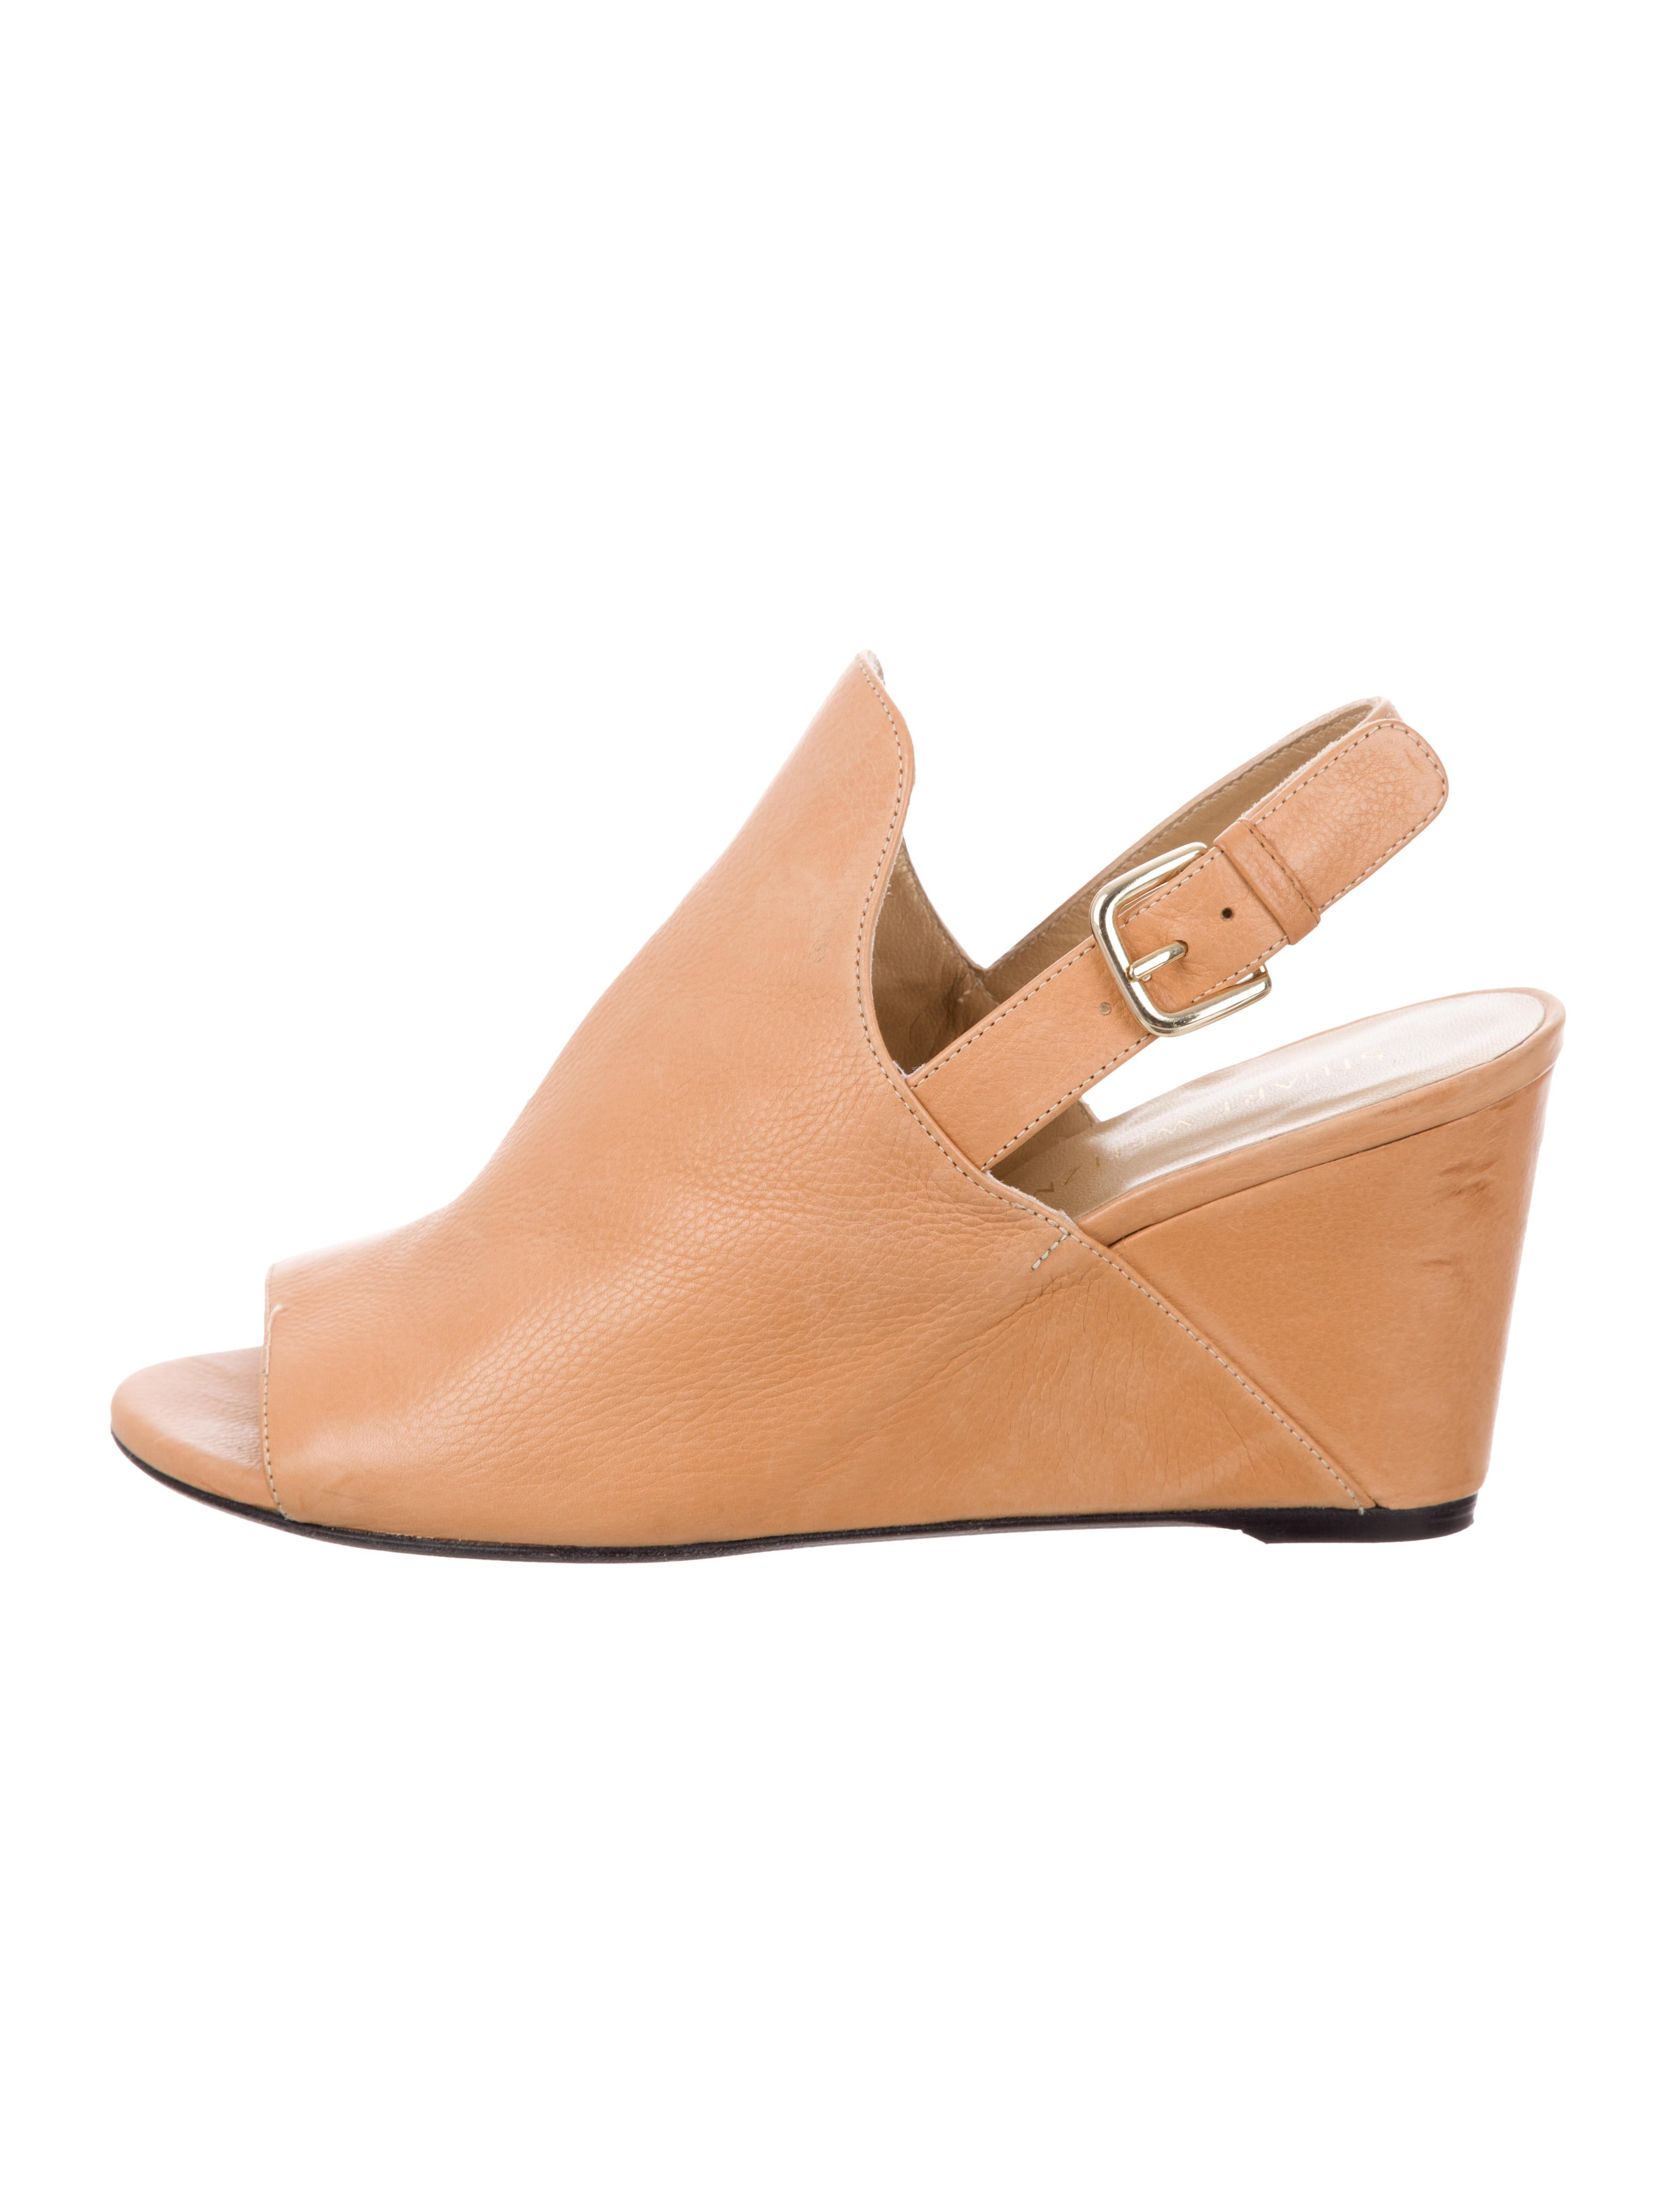 Women's Peep Toe Mini Wedges (Wide Width) Shoes>Heels>Flatform & Wedge Heels in black. Wide fit footwear. Rock your look from Torrid to Festivals like Coachella and Lollapalooza, a concert, a show, or just for fun! Torrid is your destination for cozy fall and winter clothes to .